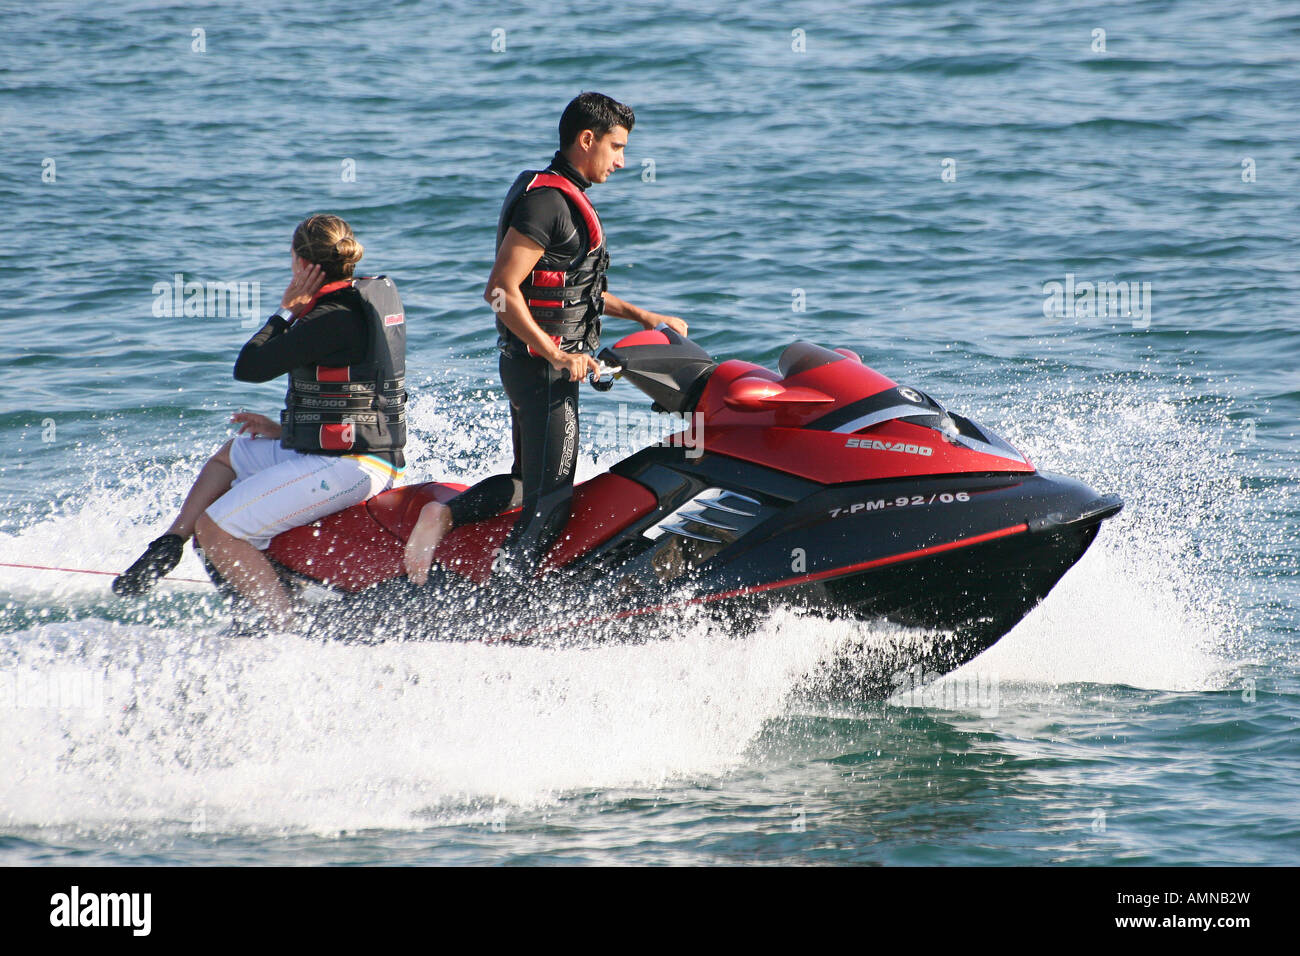 Man And Woman On A Jet Ski Bike With Woman Seated Backwards Stock